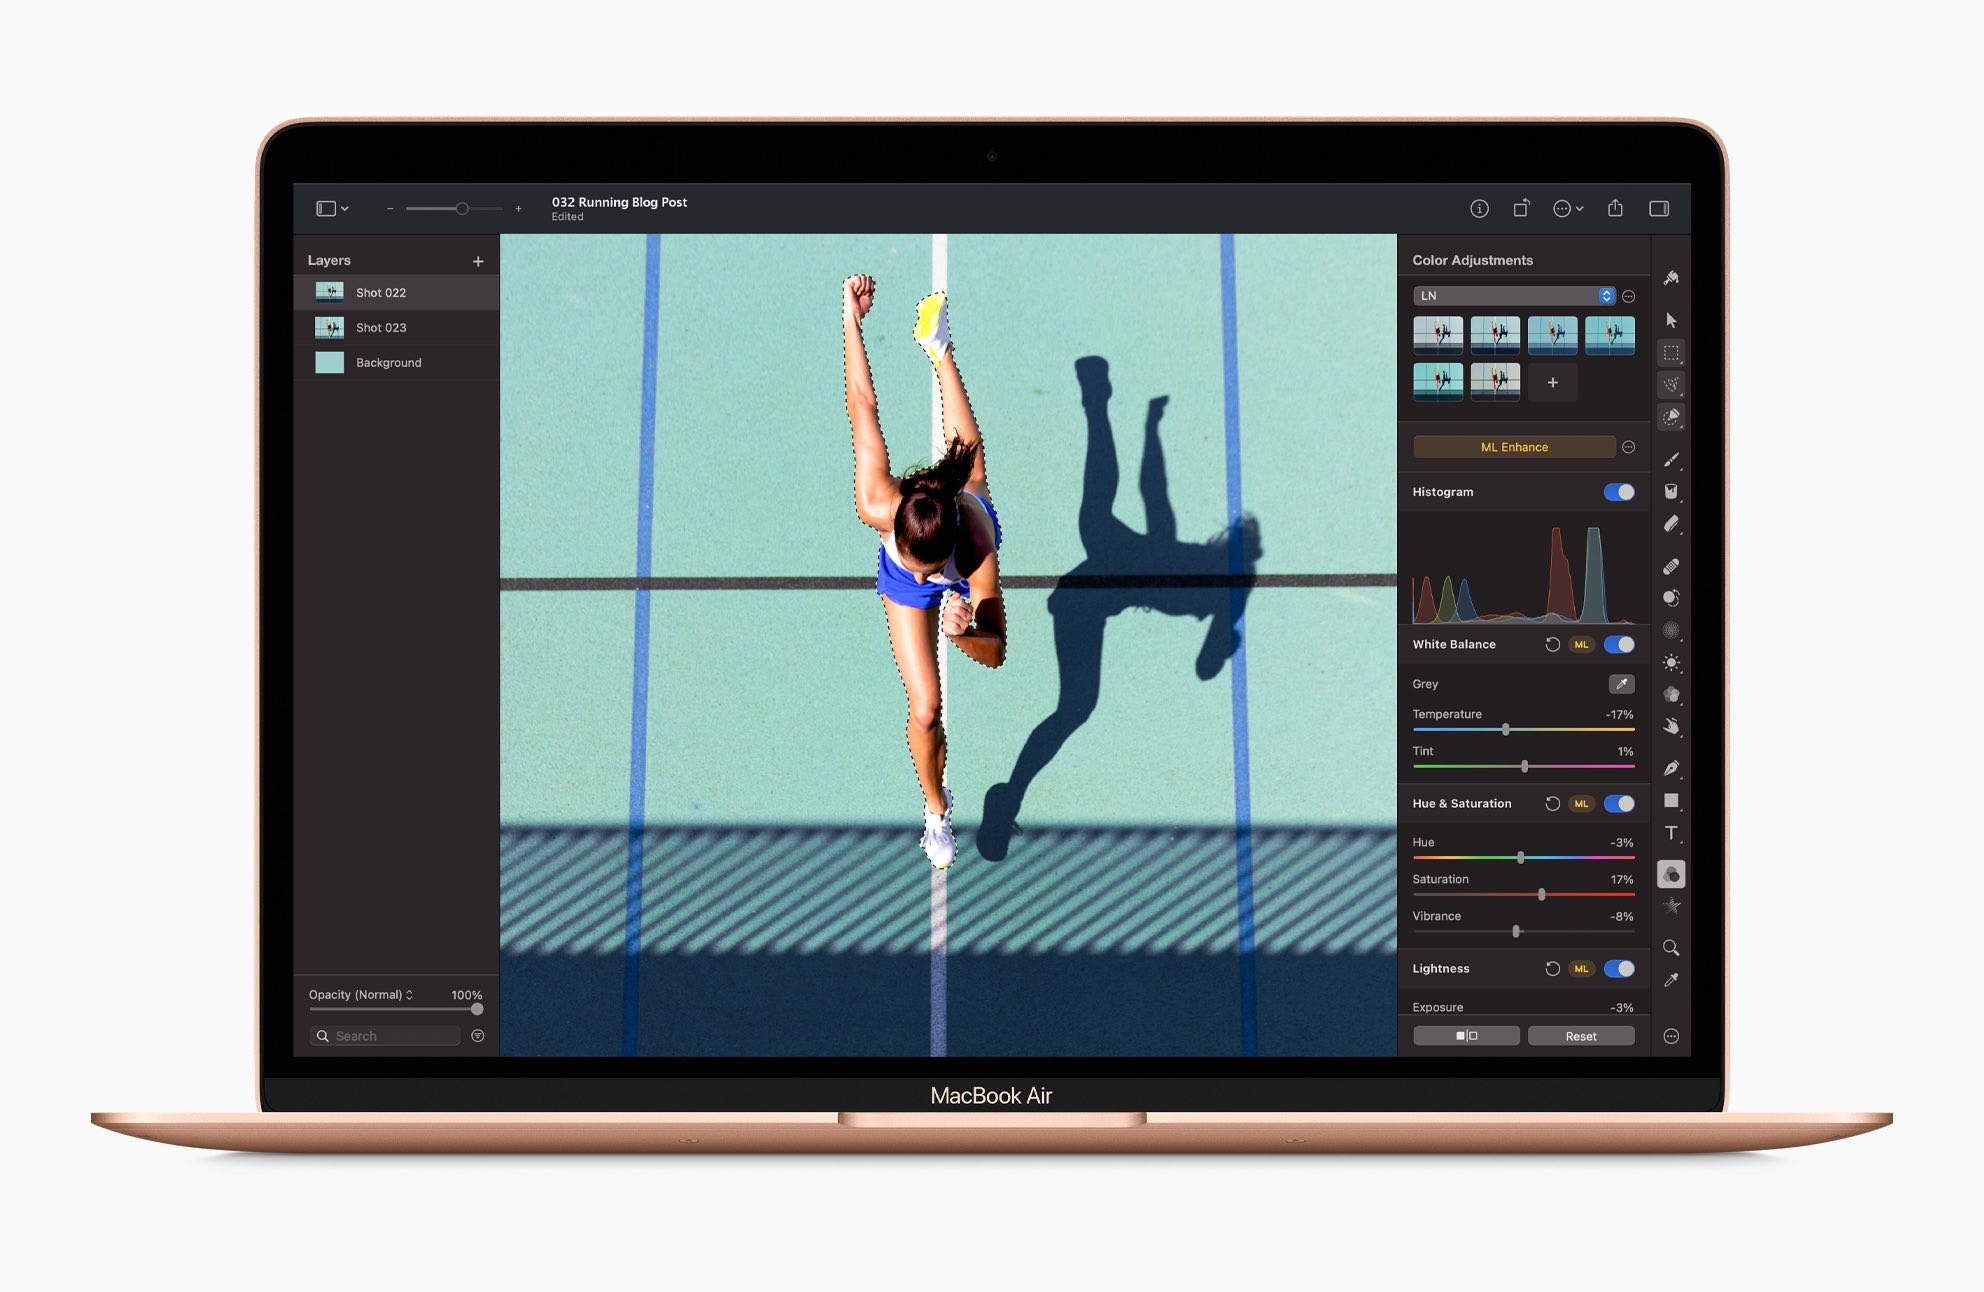 Working with photos and video is a lot quicker on the new MacBook Air with the M1 chip.